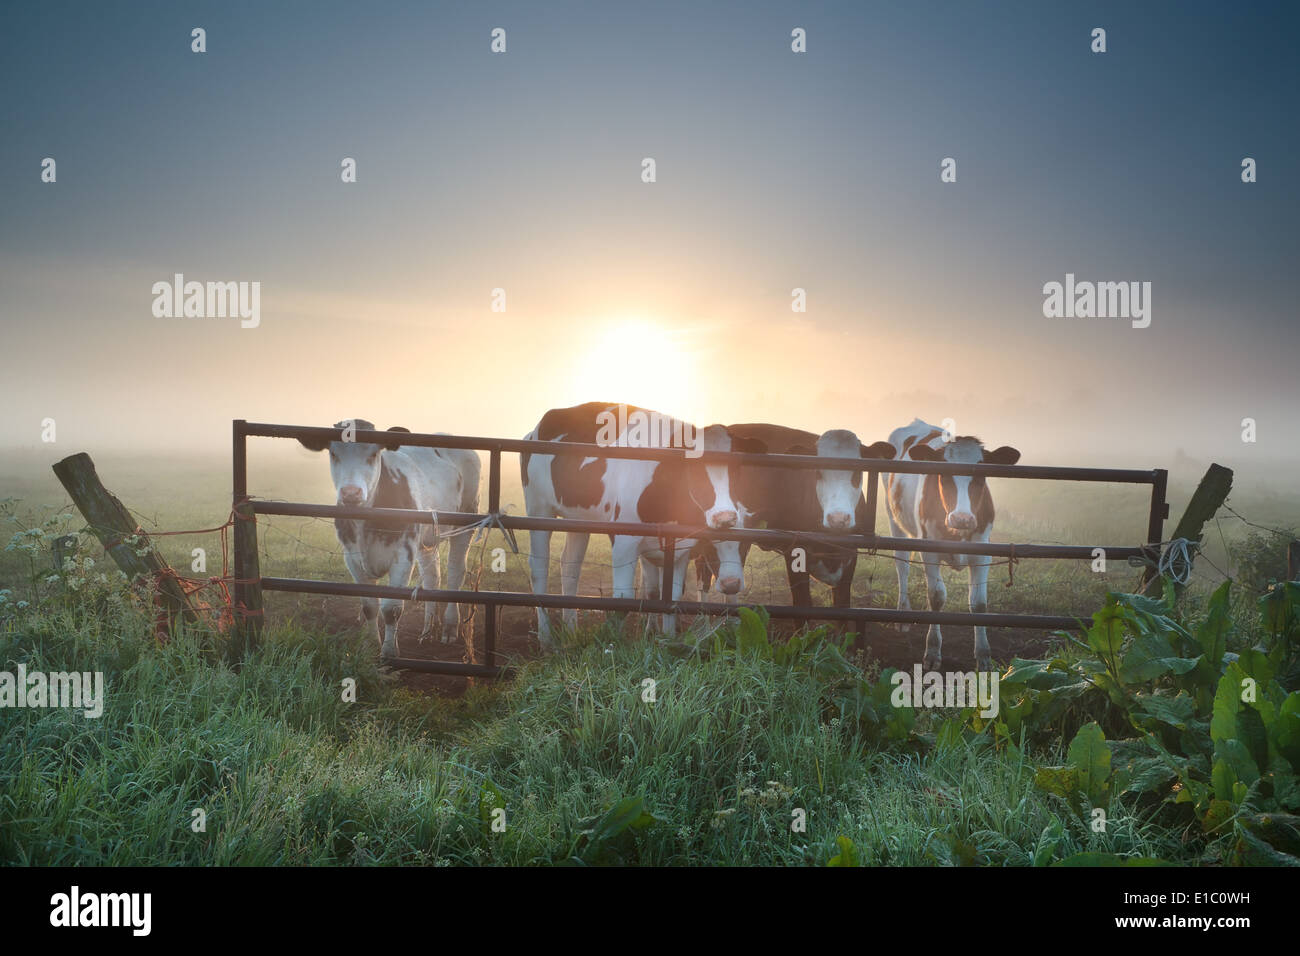 cows on misty pasture behind fence at sunrise - Stock Image